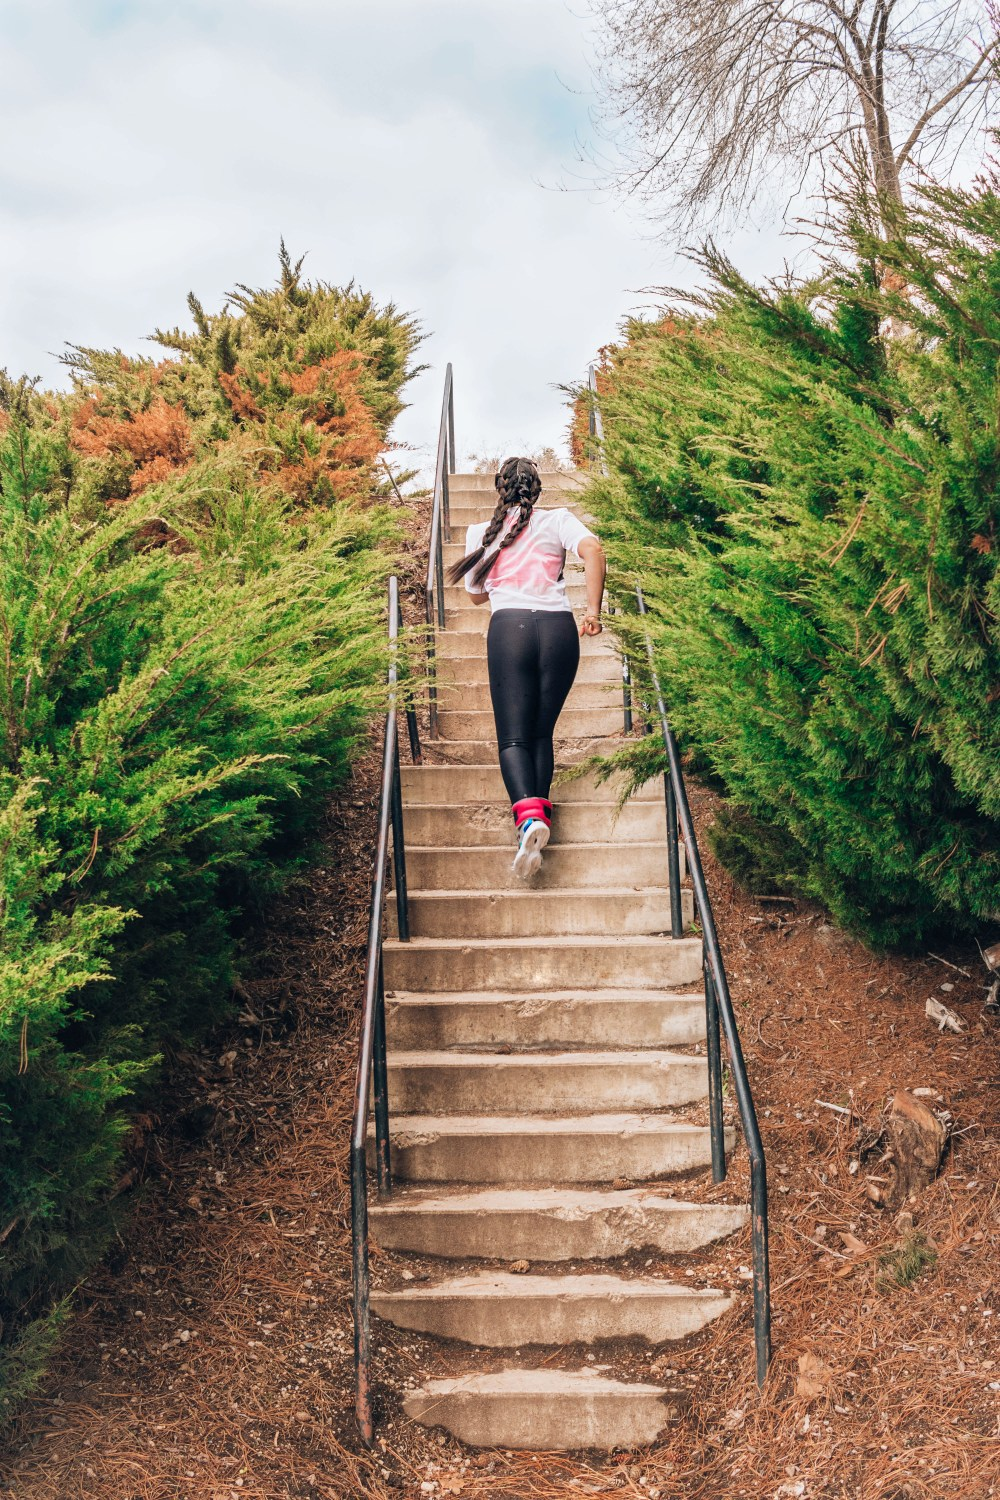 Lauryn Hock running up concrete stairs in a park surrounded by ferns